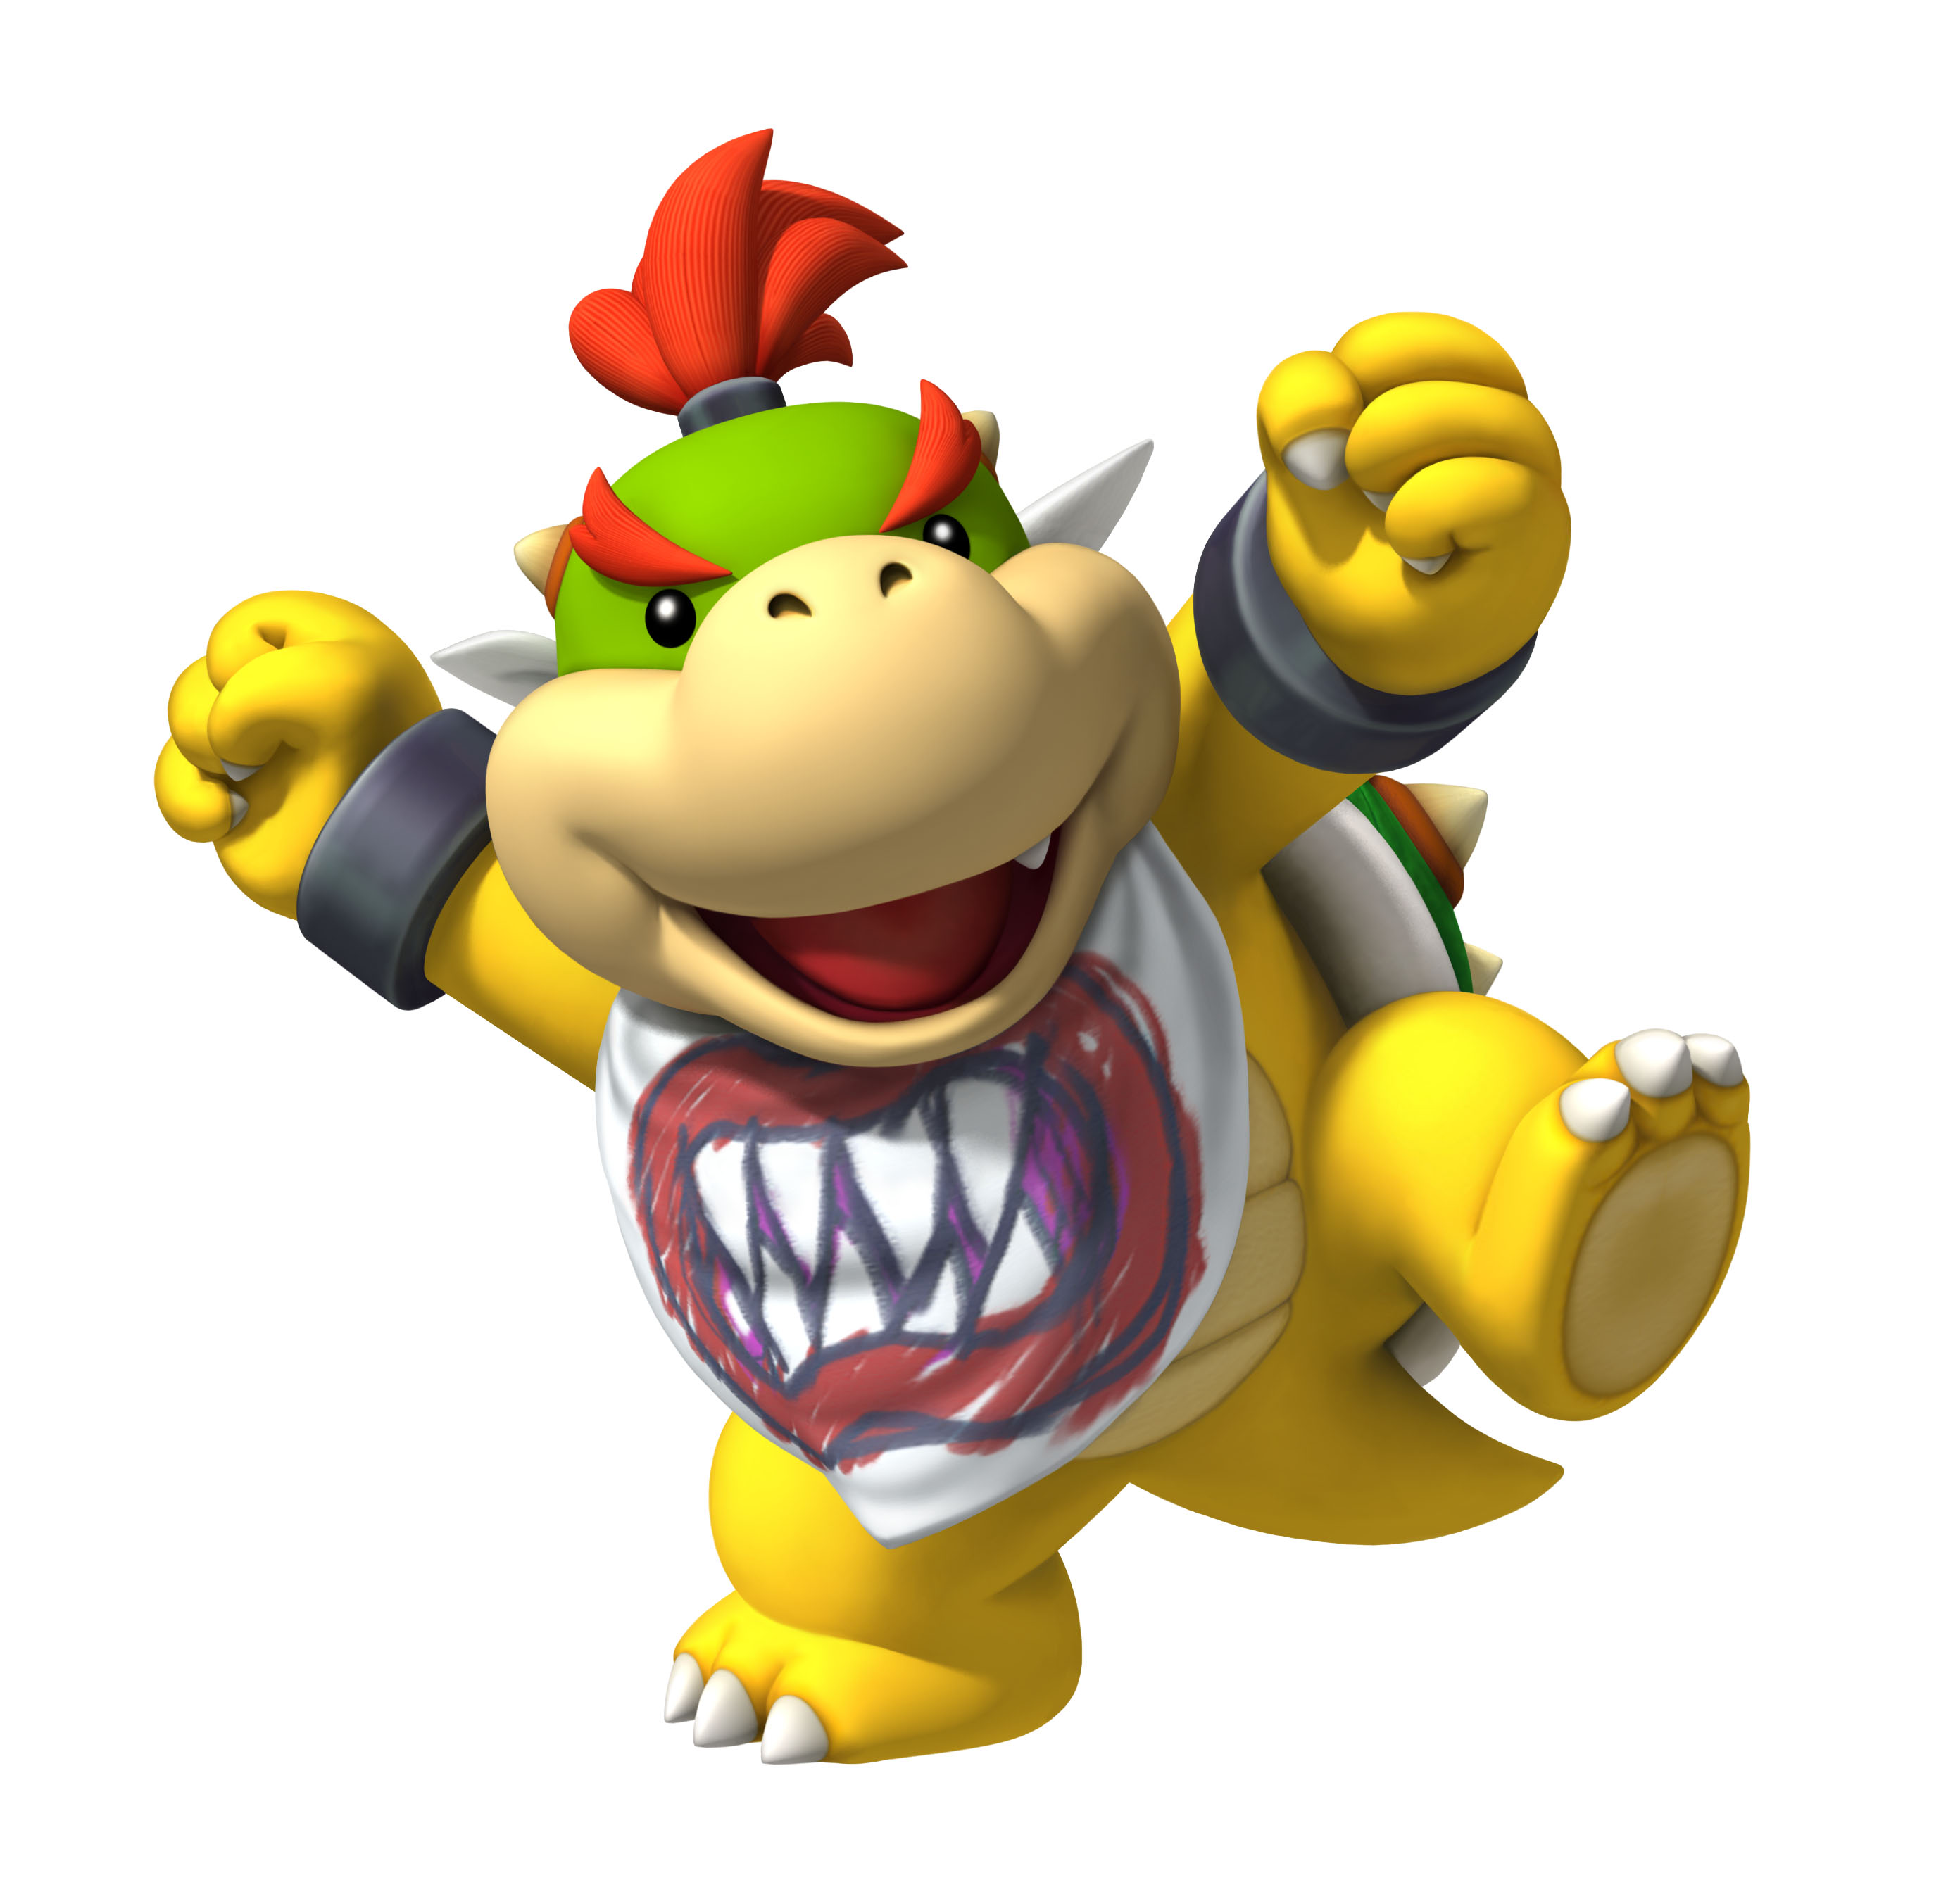 My Favourite Nintendo Character Bowser Junior Or Baby